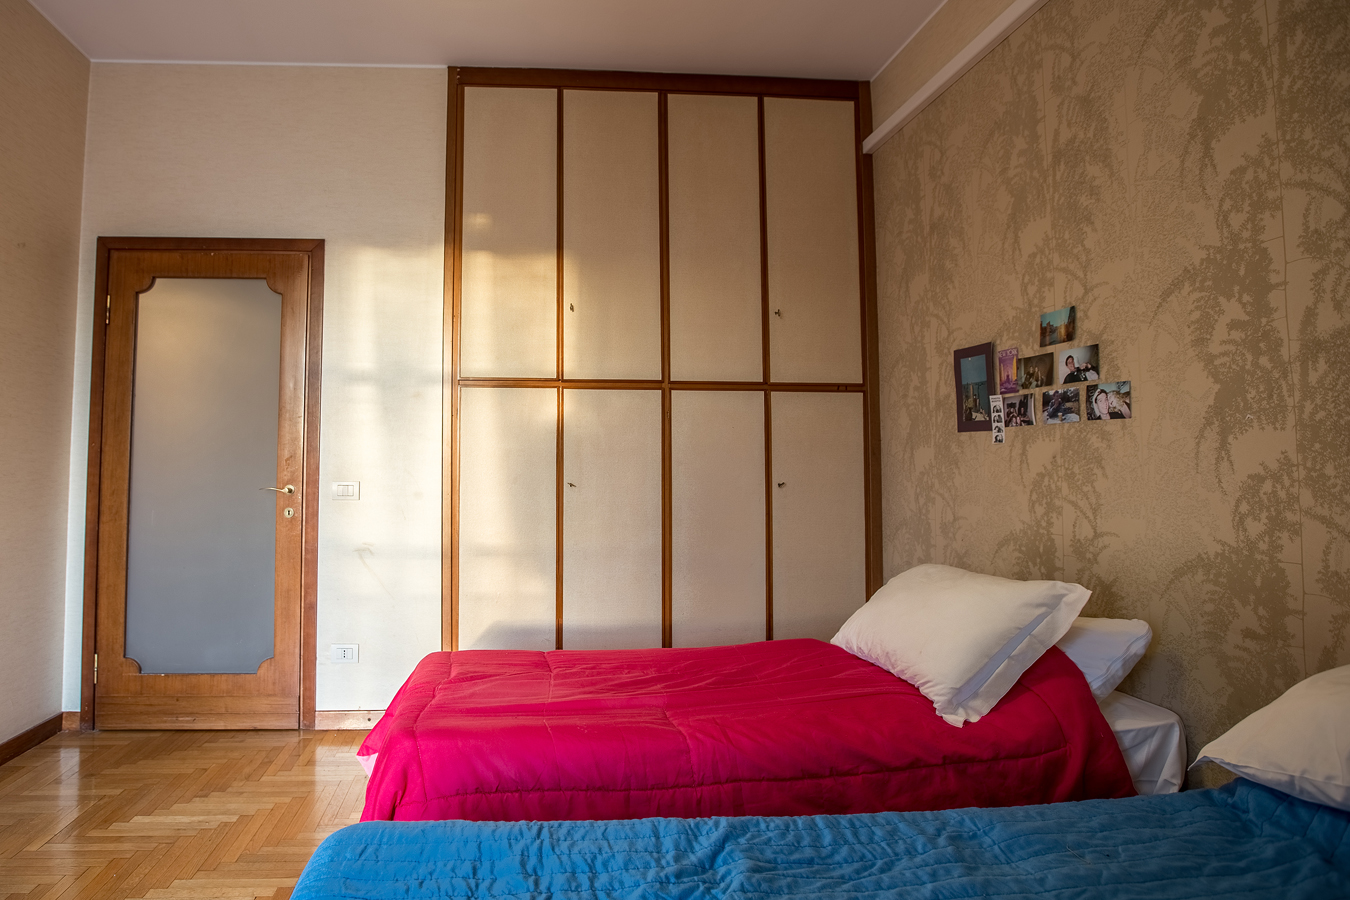 Student Accomodation for rent in double room in Via Melzo, 7, in Milano, Italy